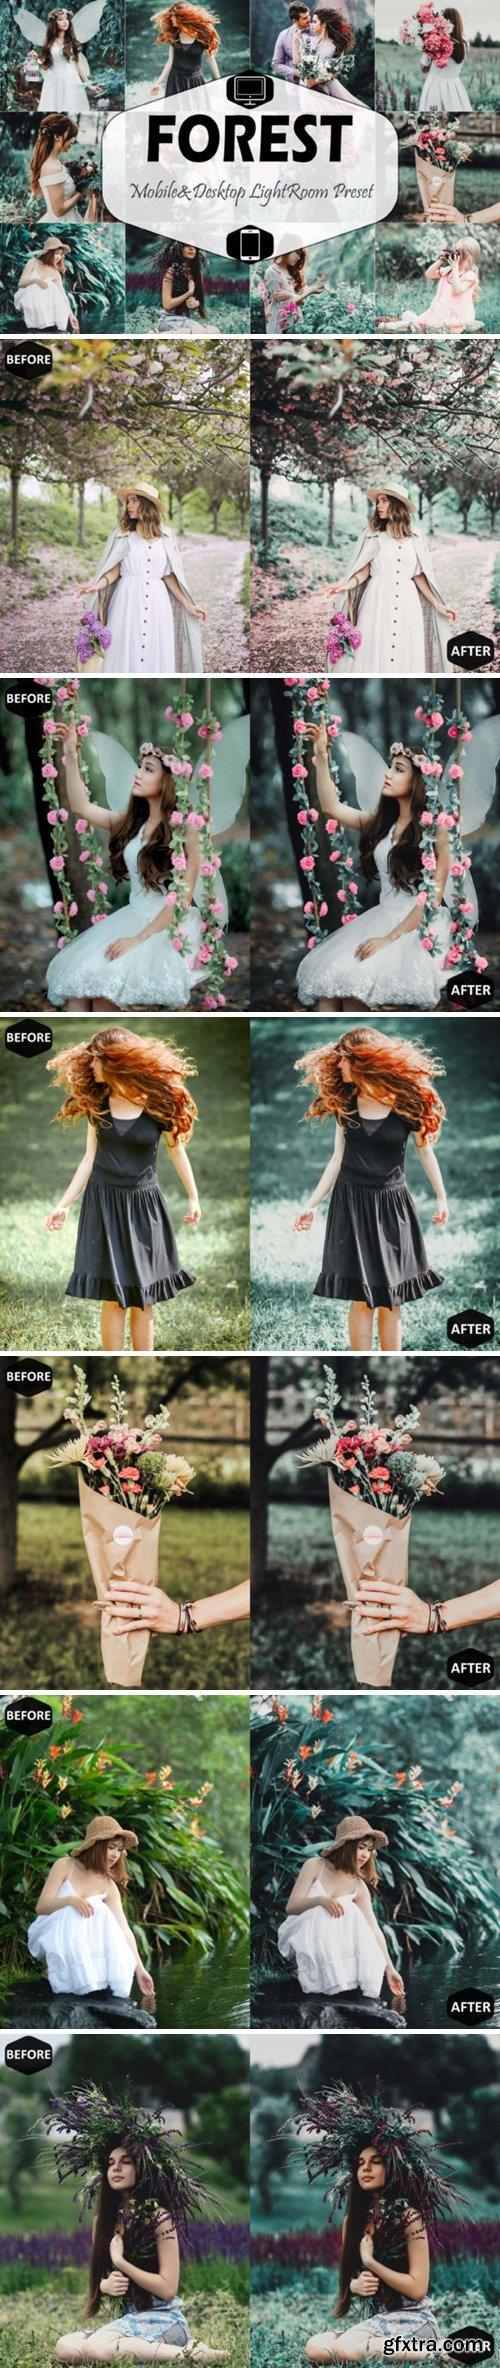 Forest Mobile & Desktop Lightroom Preset 1629277